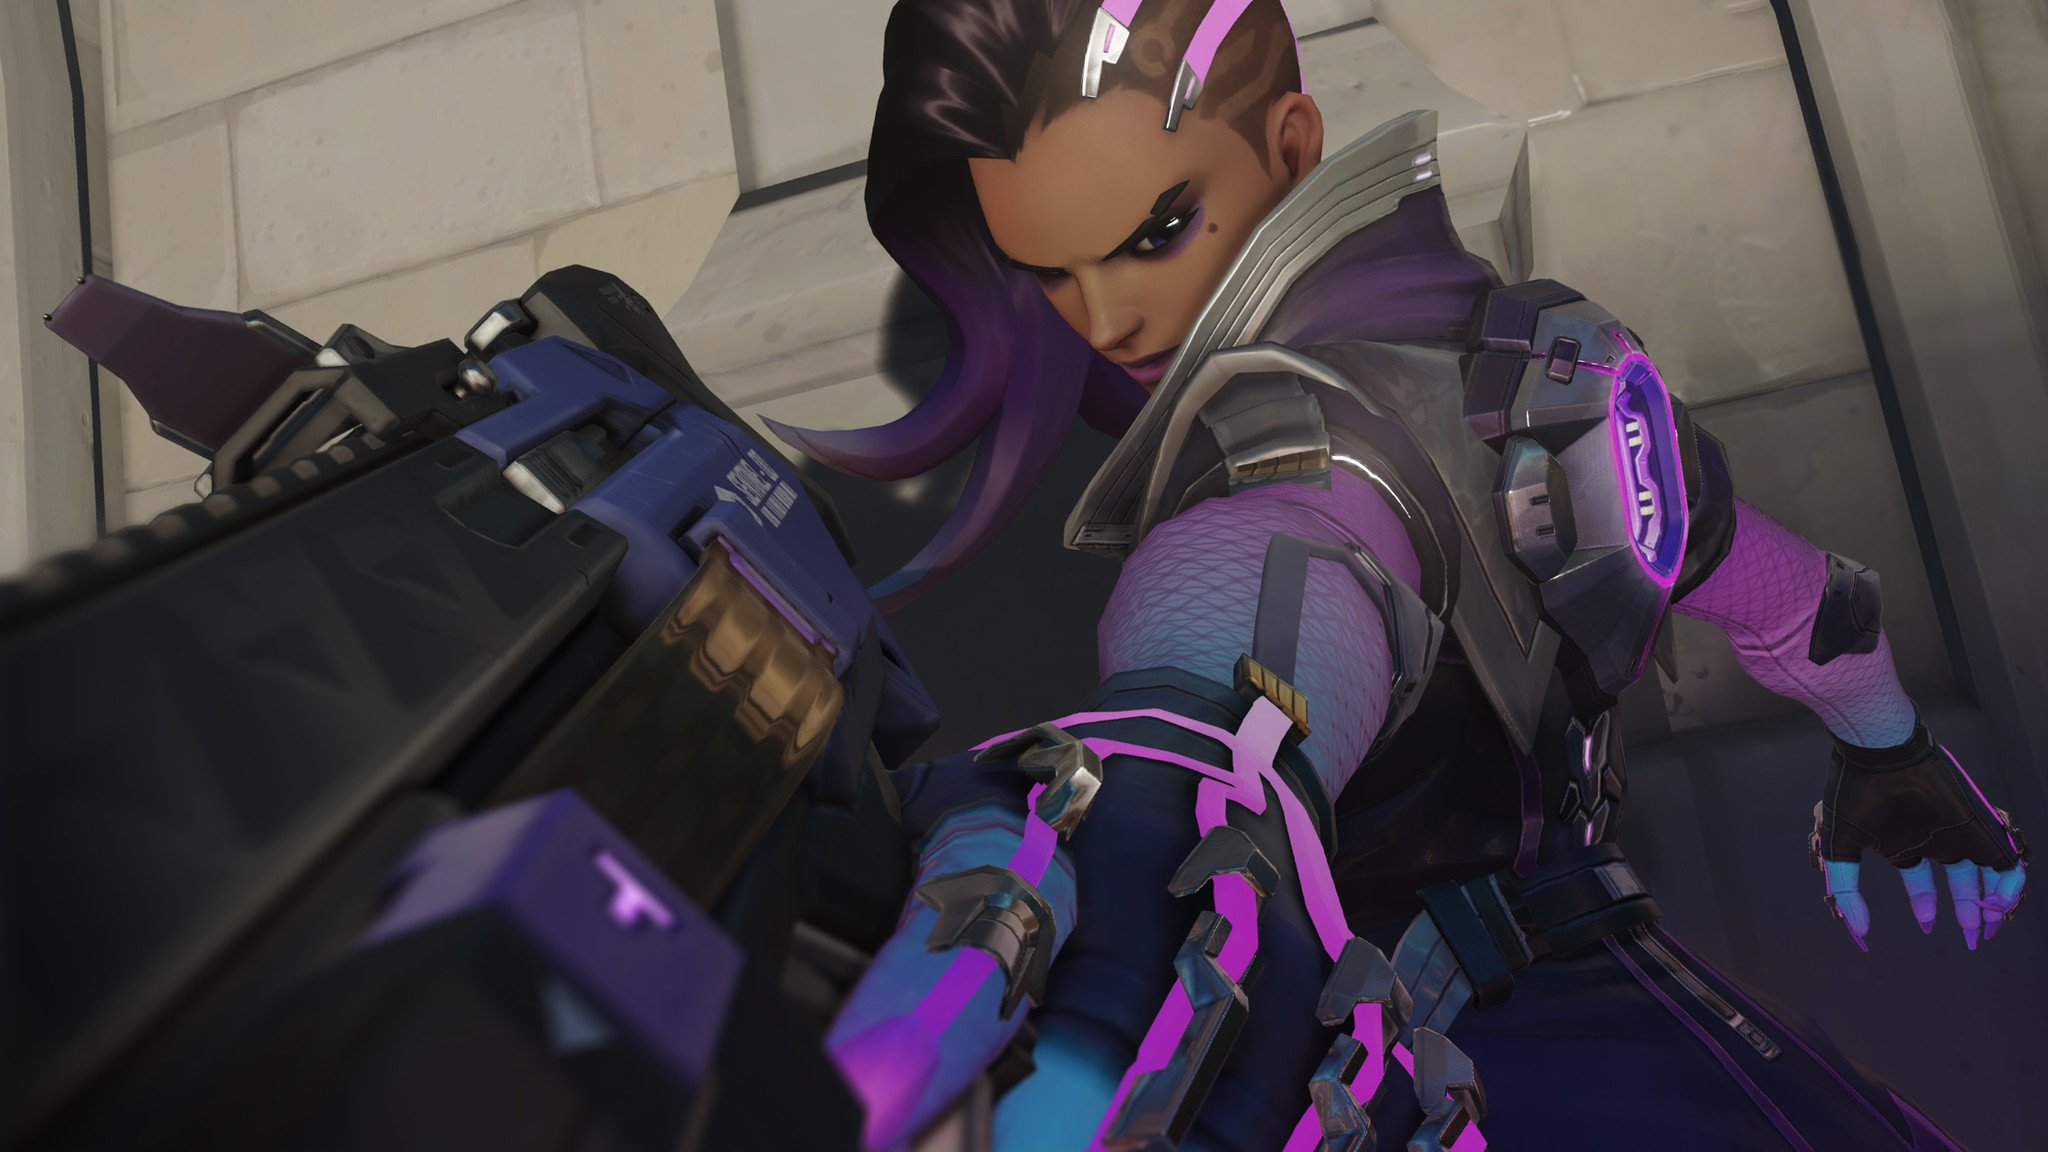 Stealth Hacker Sombra Arrives With New DLC For Overwatch